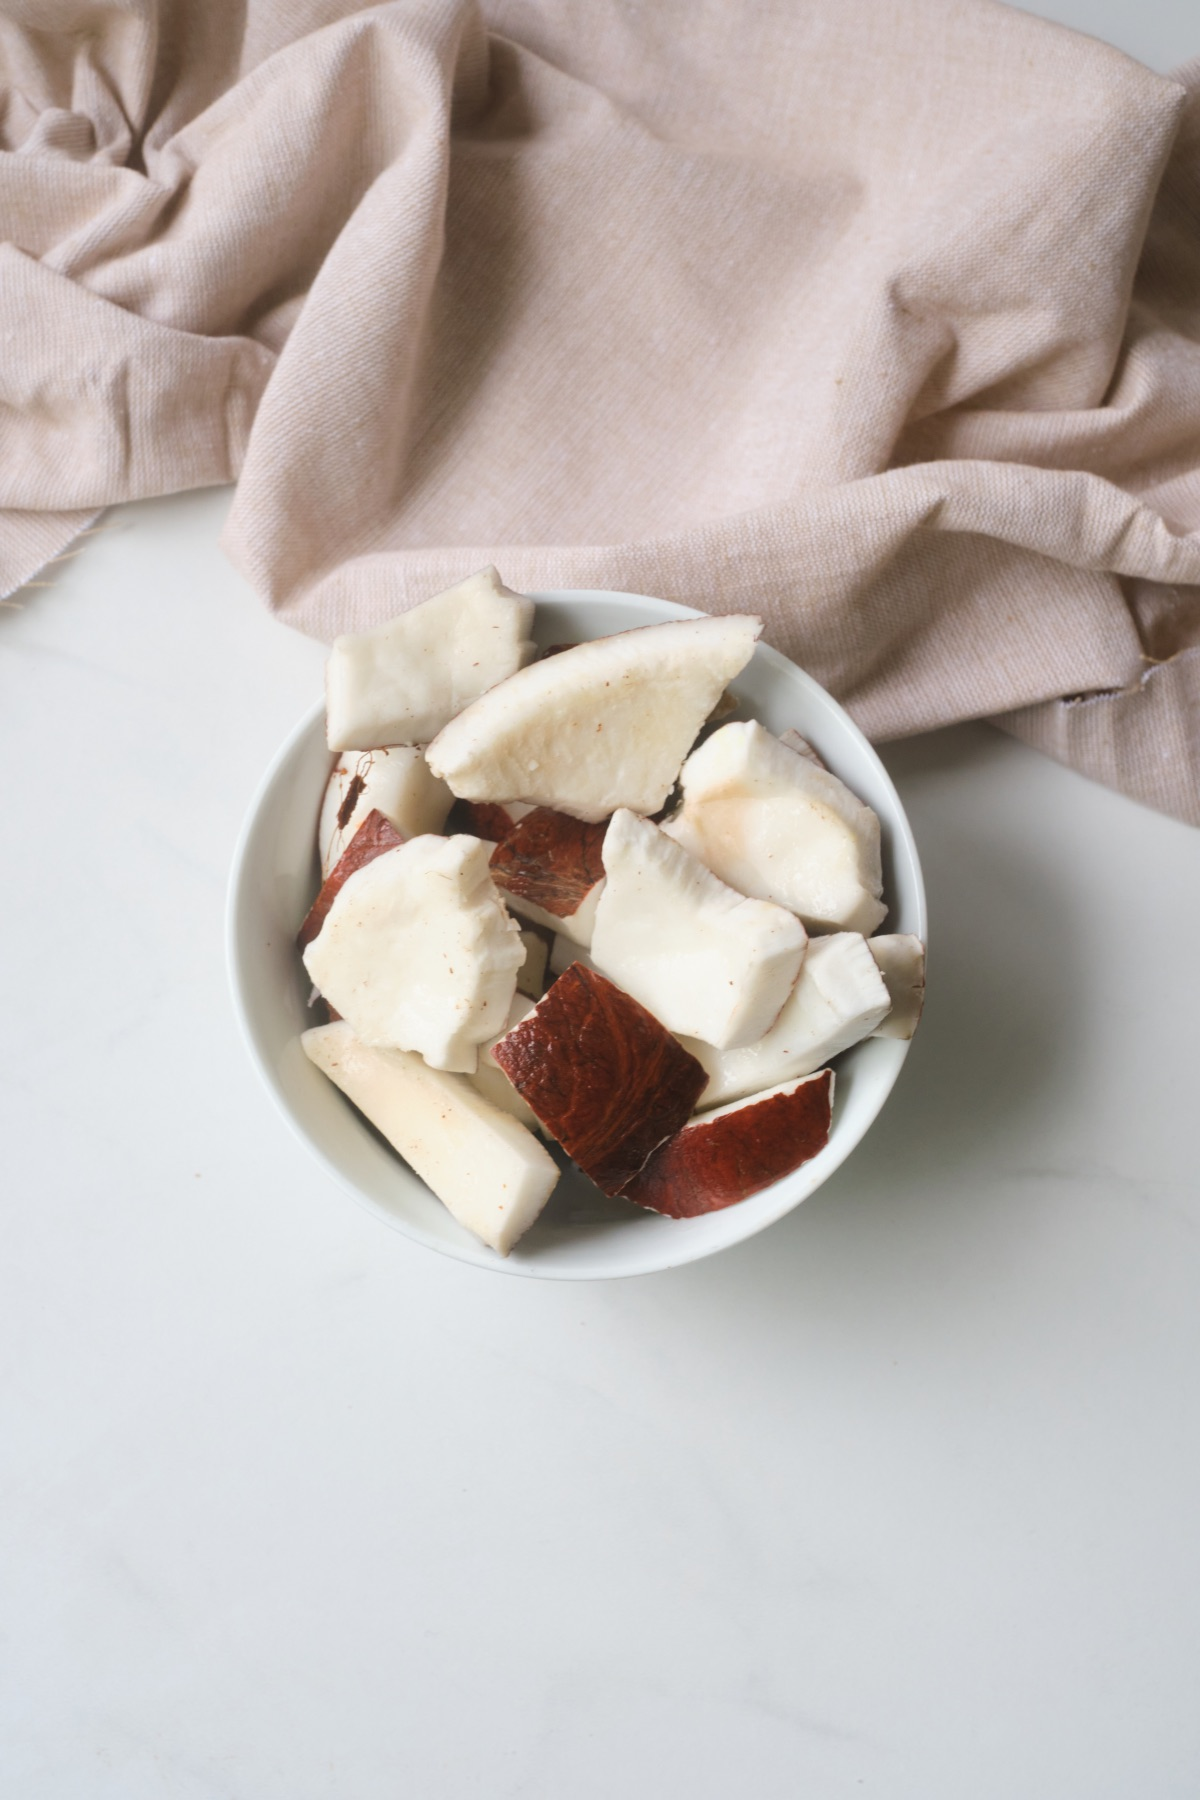 coconut pieces before the peel is removed